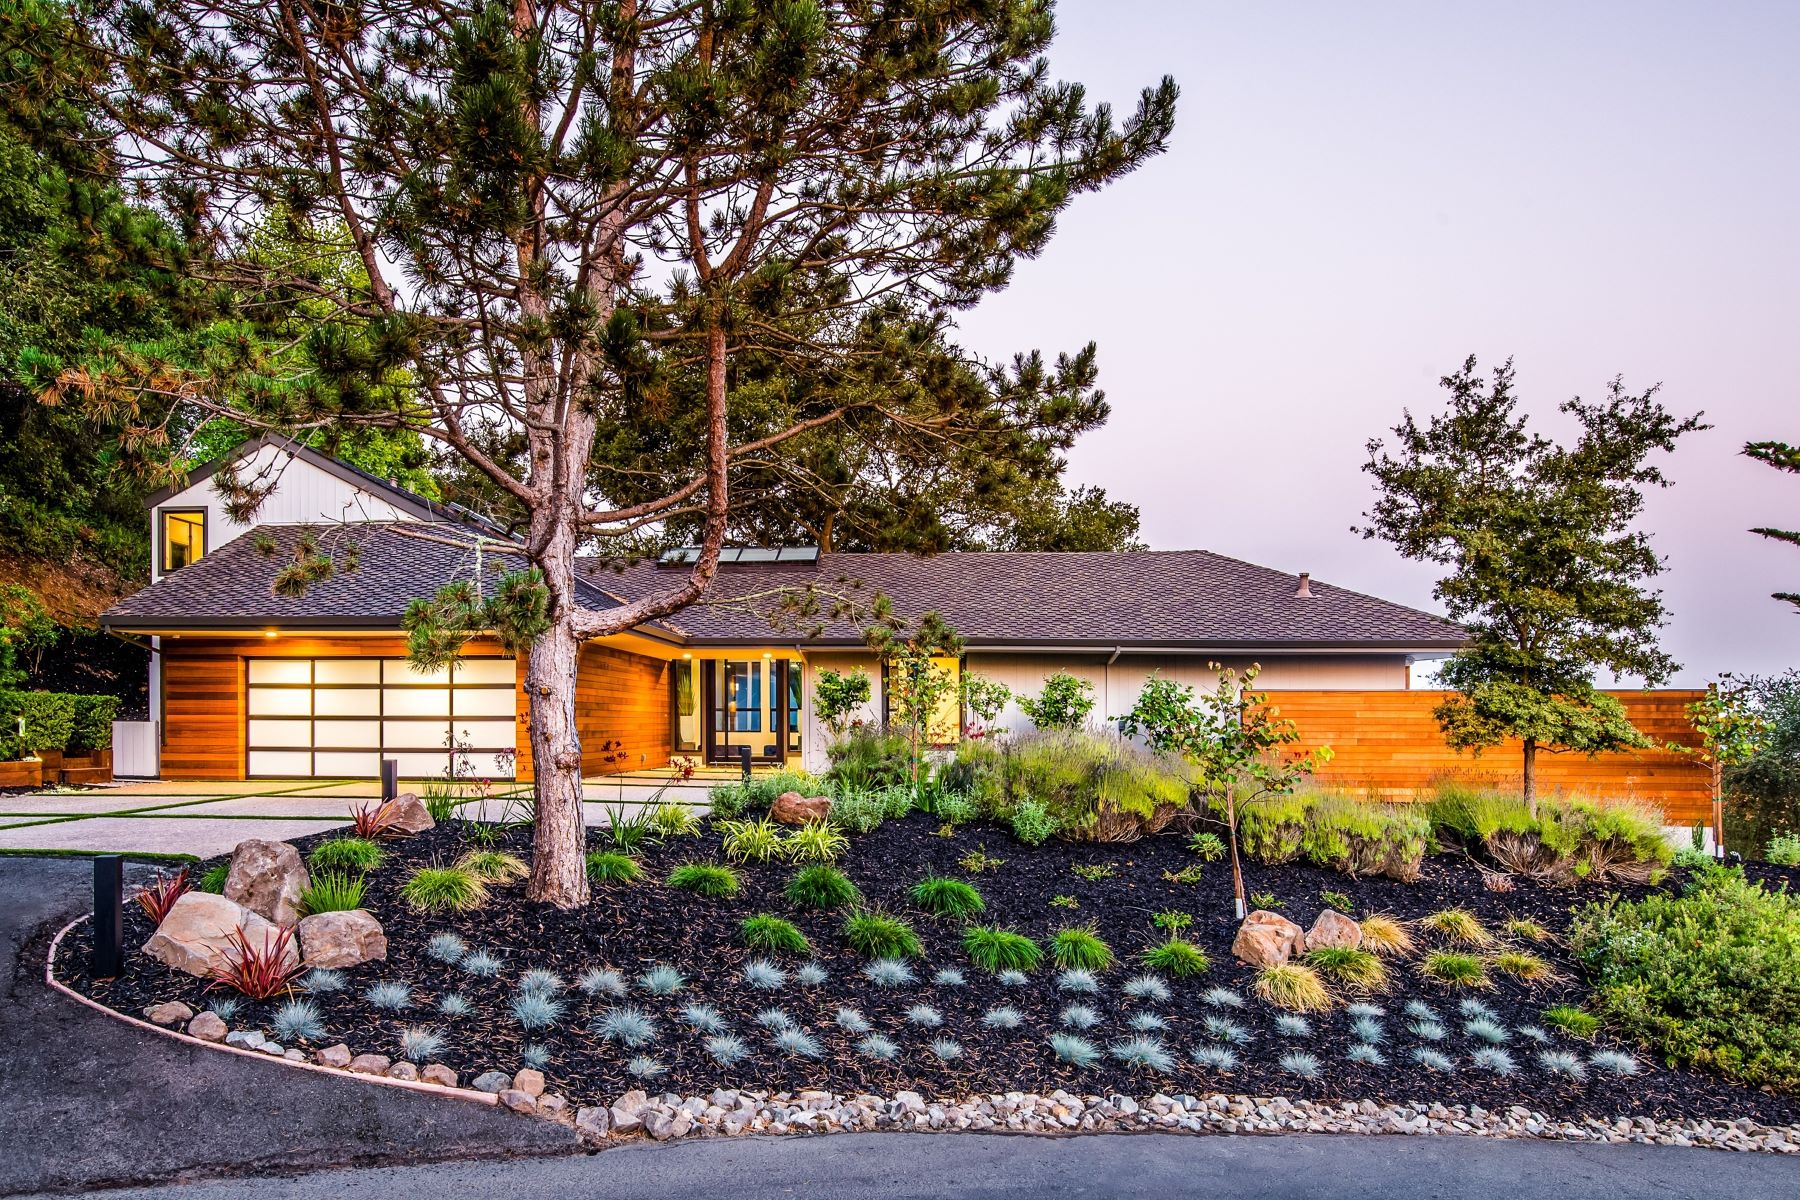 Single Family Homes for Sale at The Best of Sleepy Hollow - Orinda's Finest! 121 Tappan Lane Orinda, California 94563 United States